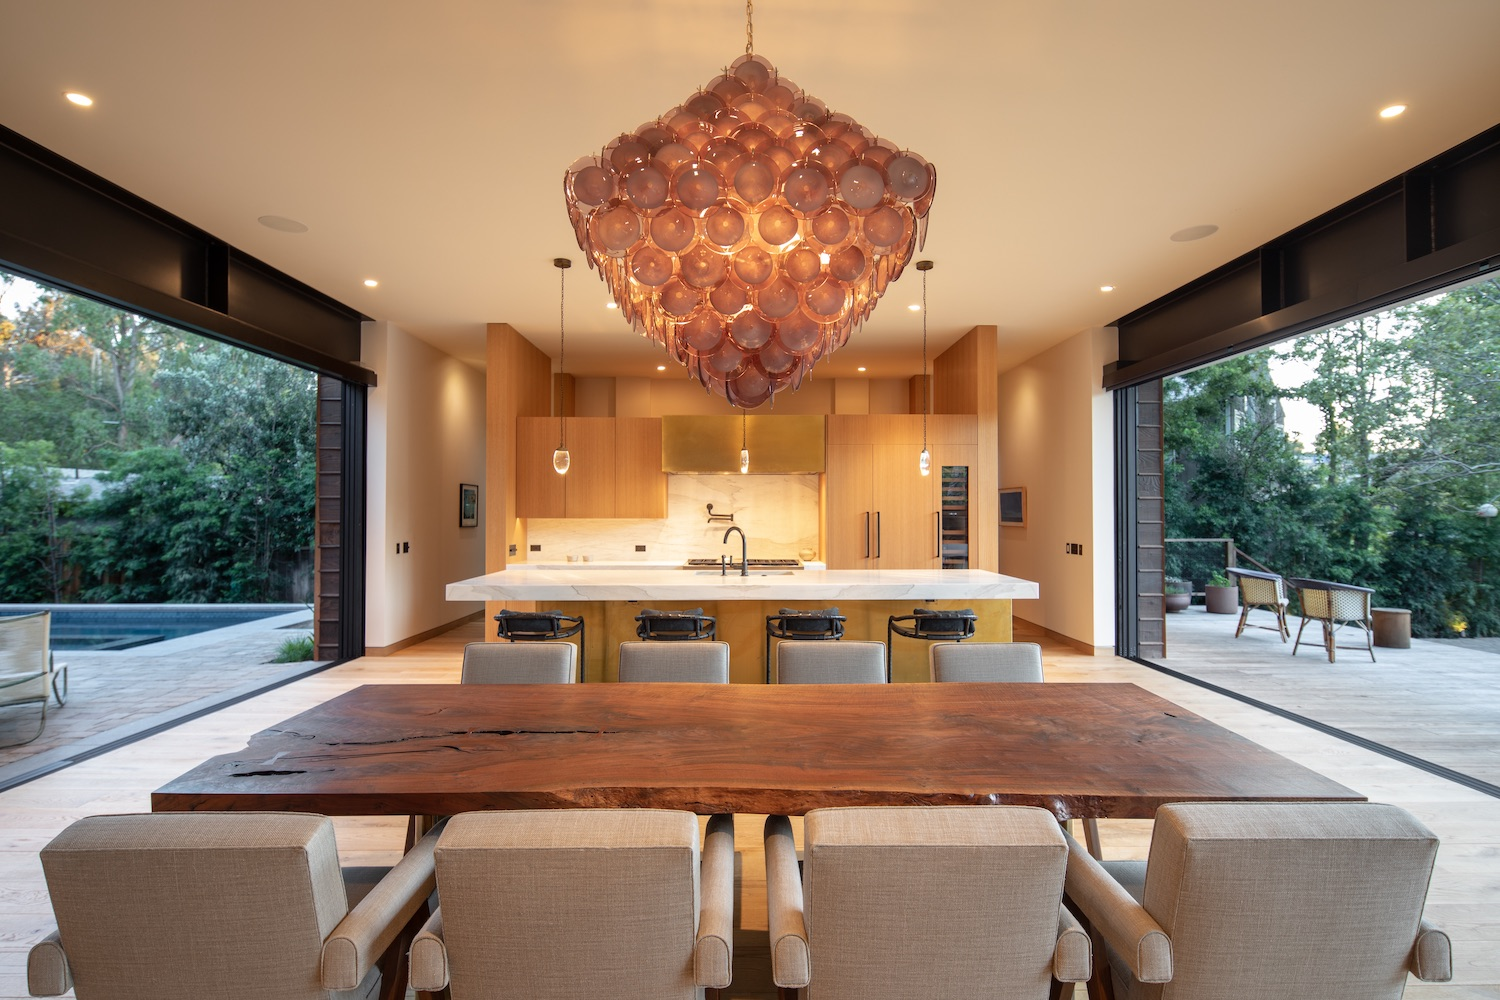 pendant lamp over the wooden dining table in kitchen